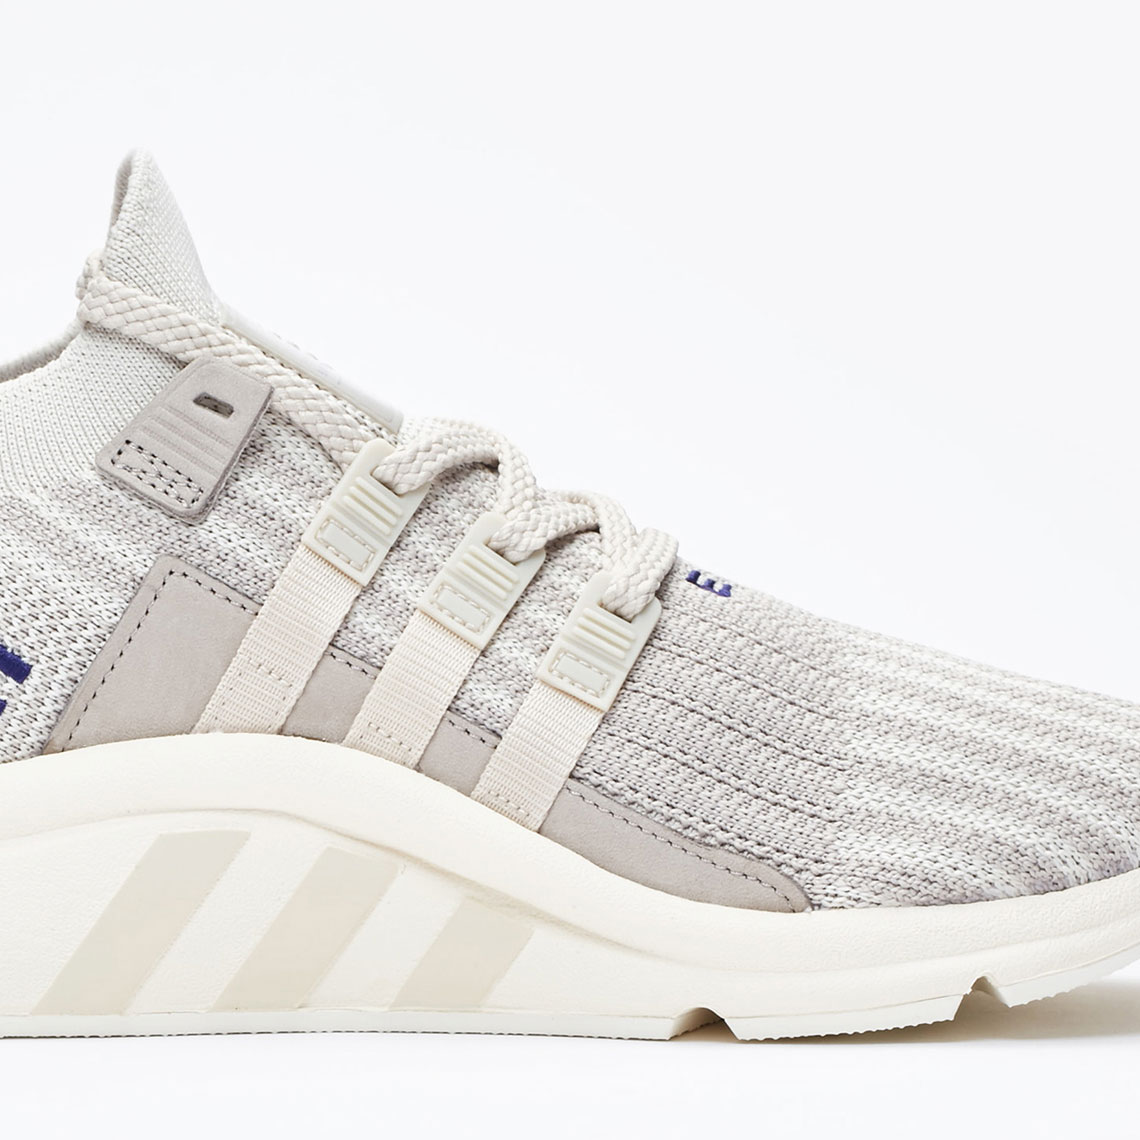 cheaper cb95f 33f1c adidas EQT Basketball ADV Release Date March 28, 2018. Available at  Sneakersnstuff 119. Color Core BrownLight Brown Real Purple Style Code  B37241